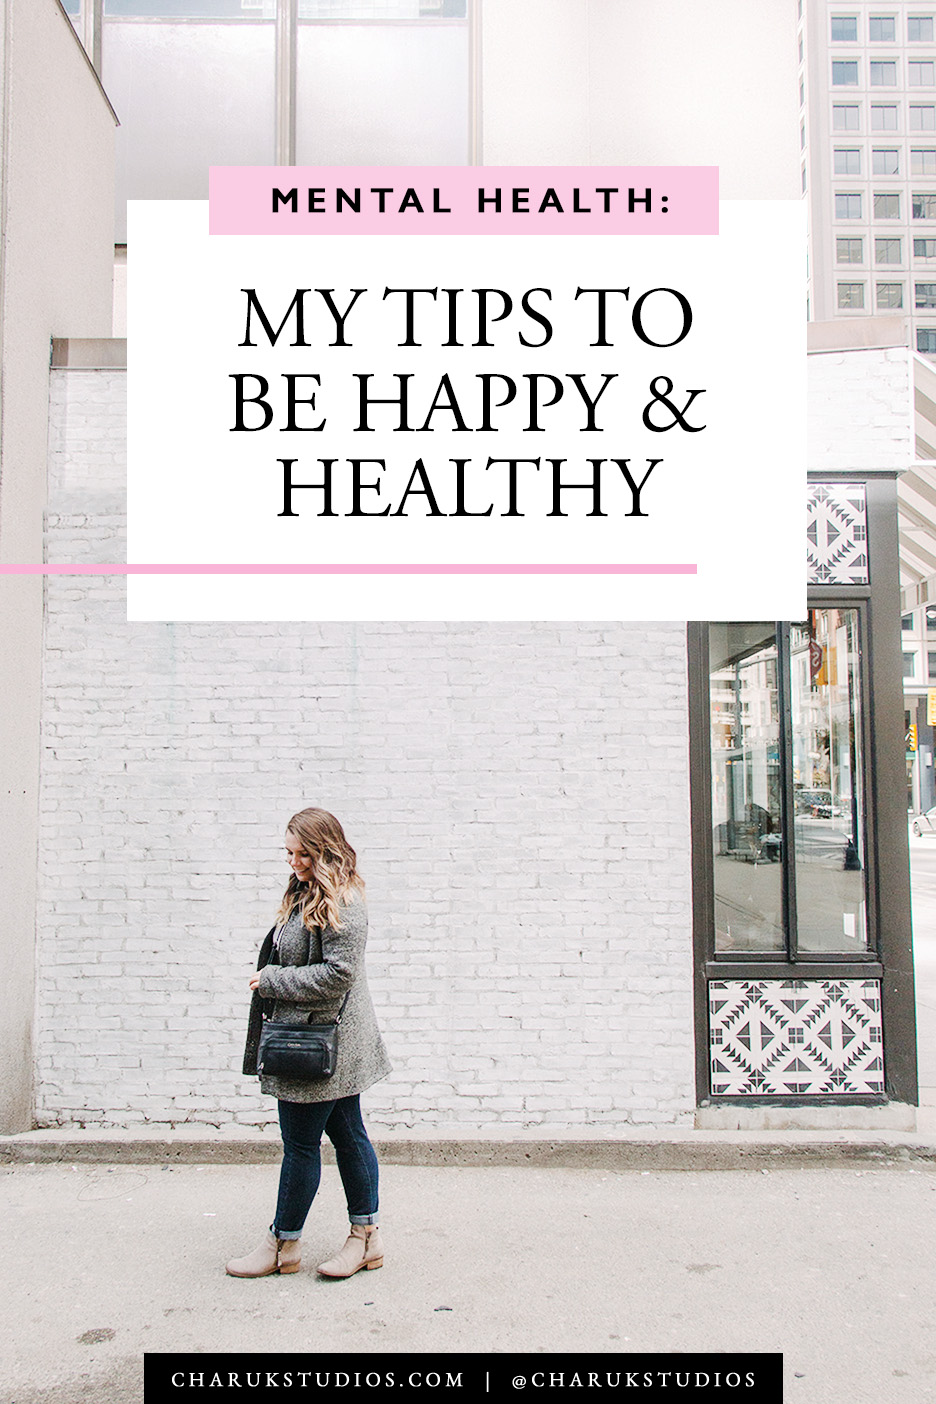 Mental Health: My Tips to be Happy & Healthy by Charuk Studios